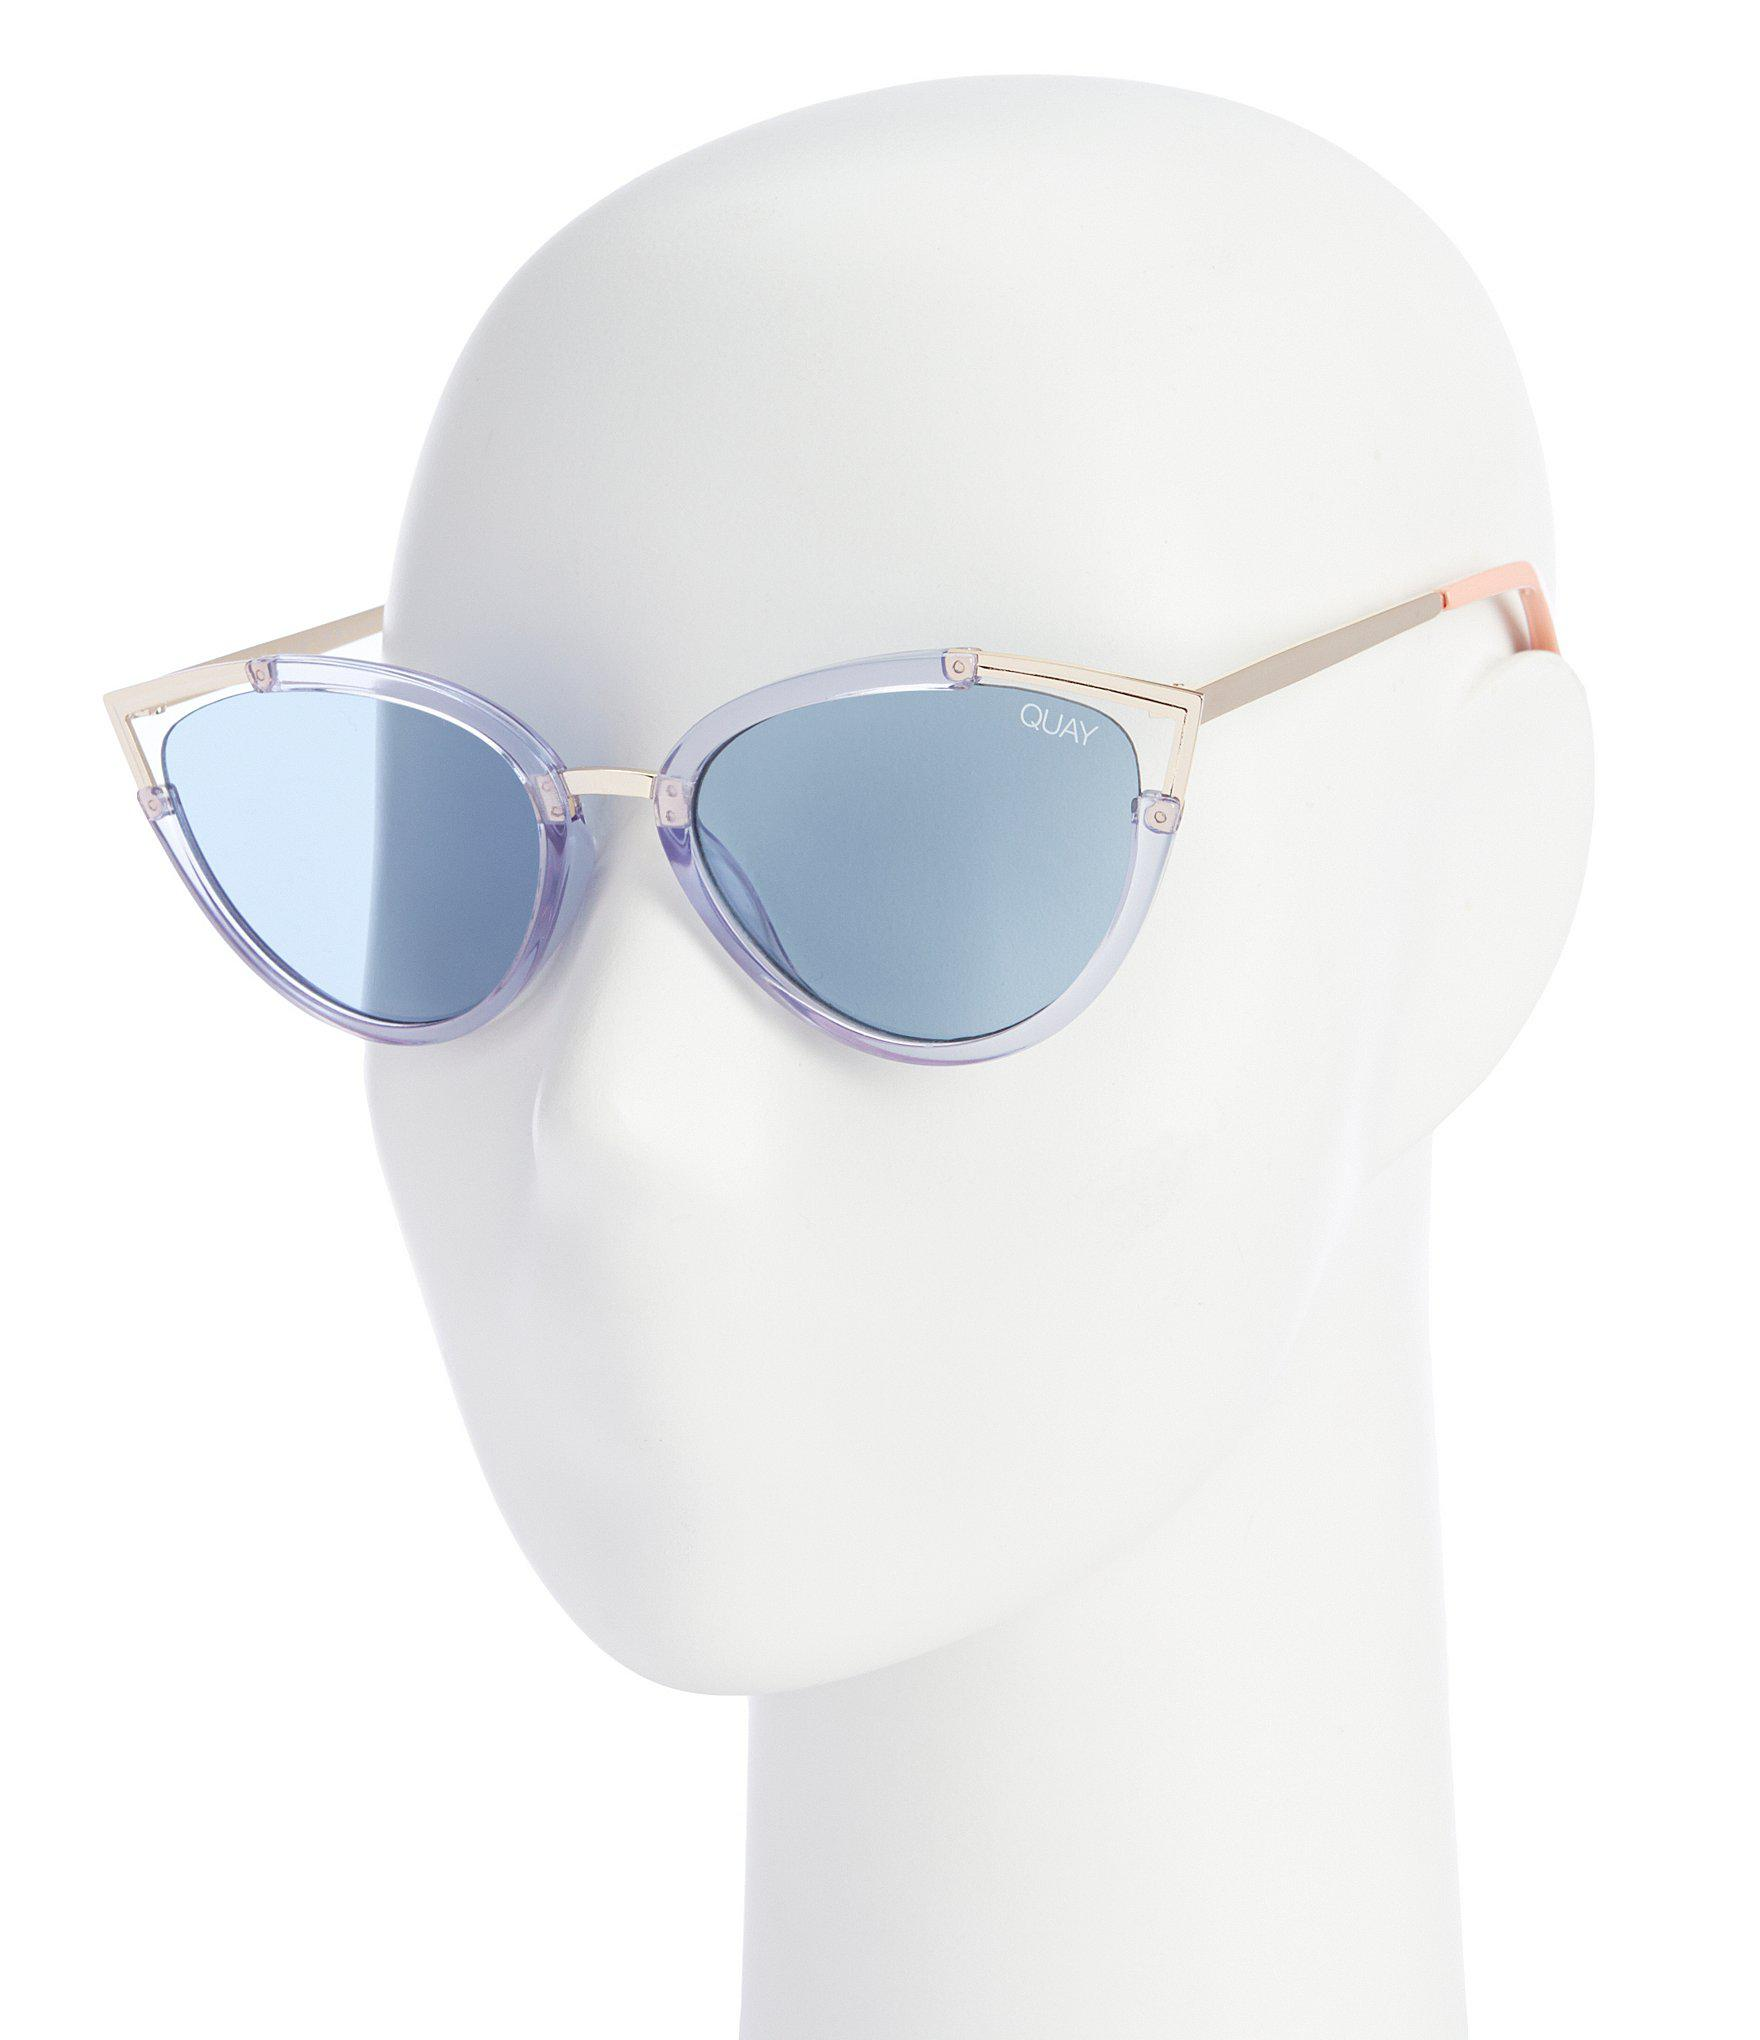 ccd5aa319e Quay Hearsay Sunglasses in Blue - Lyst